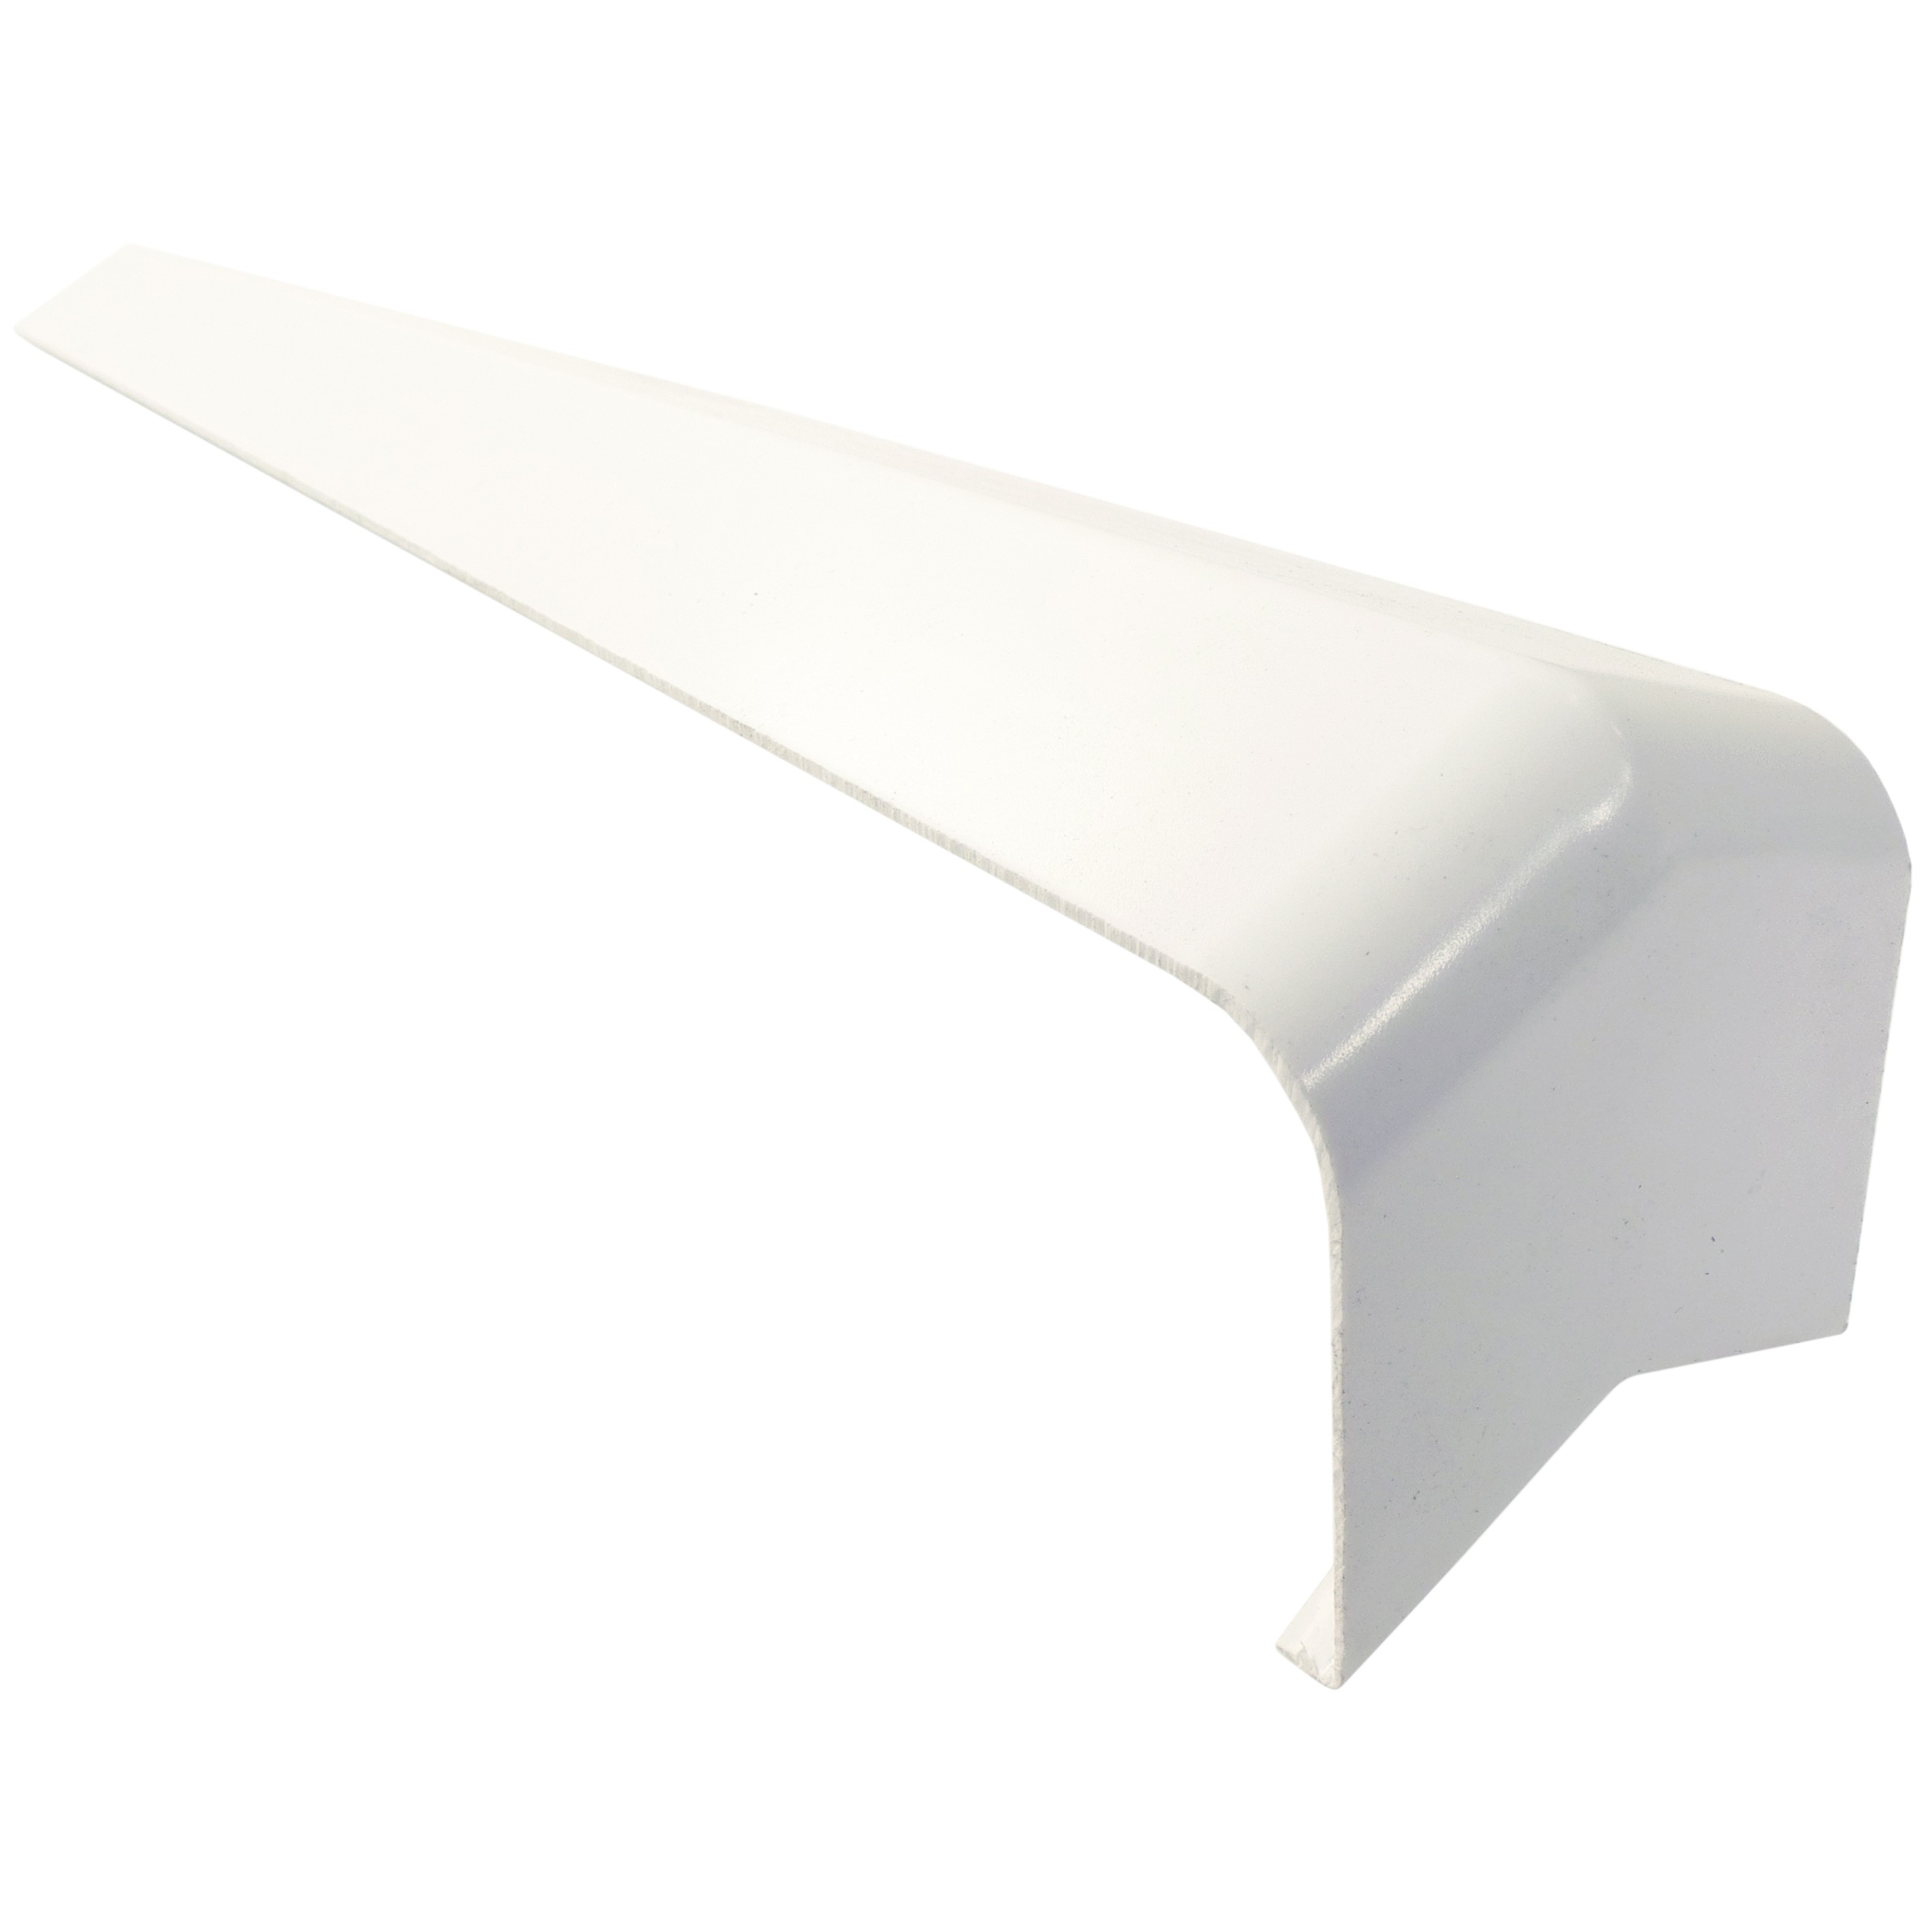 Freefoam Plain Fascia Board 135 Degree External Corner - White